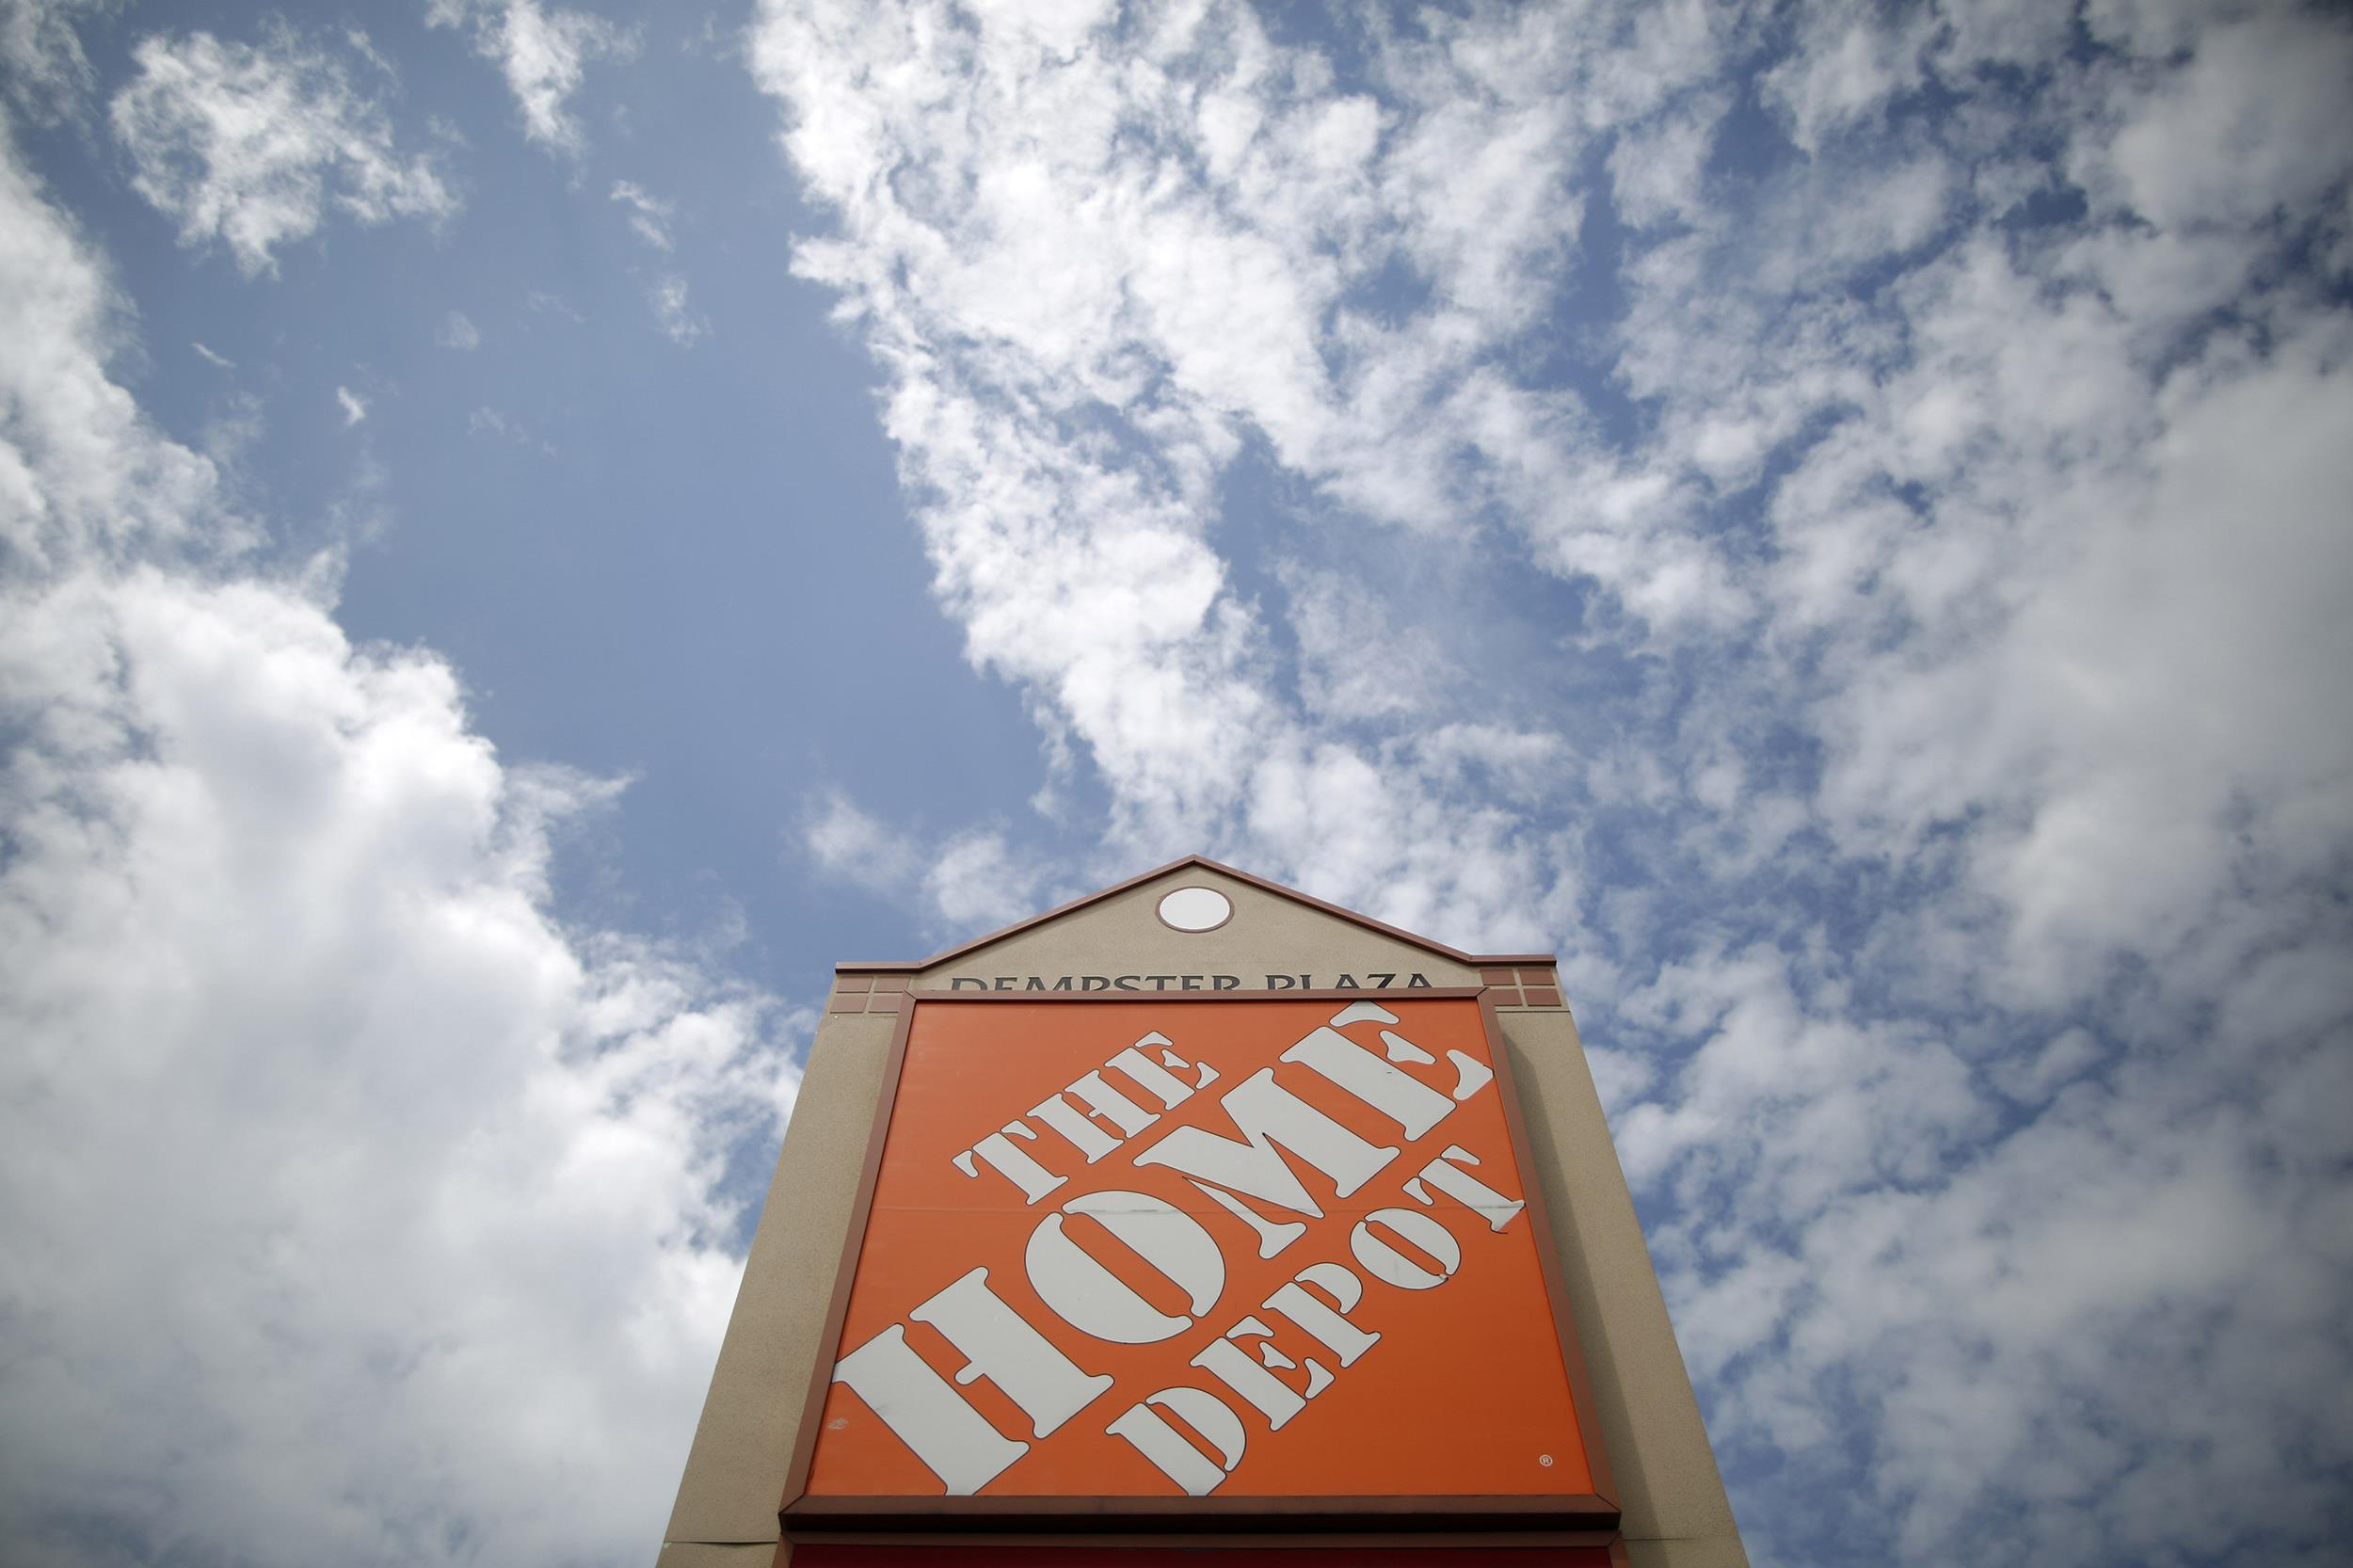 Image: A Home Depot location